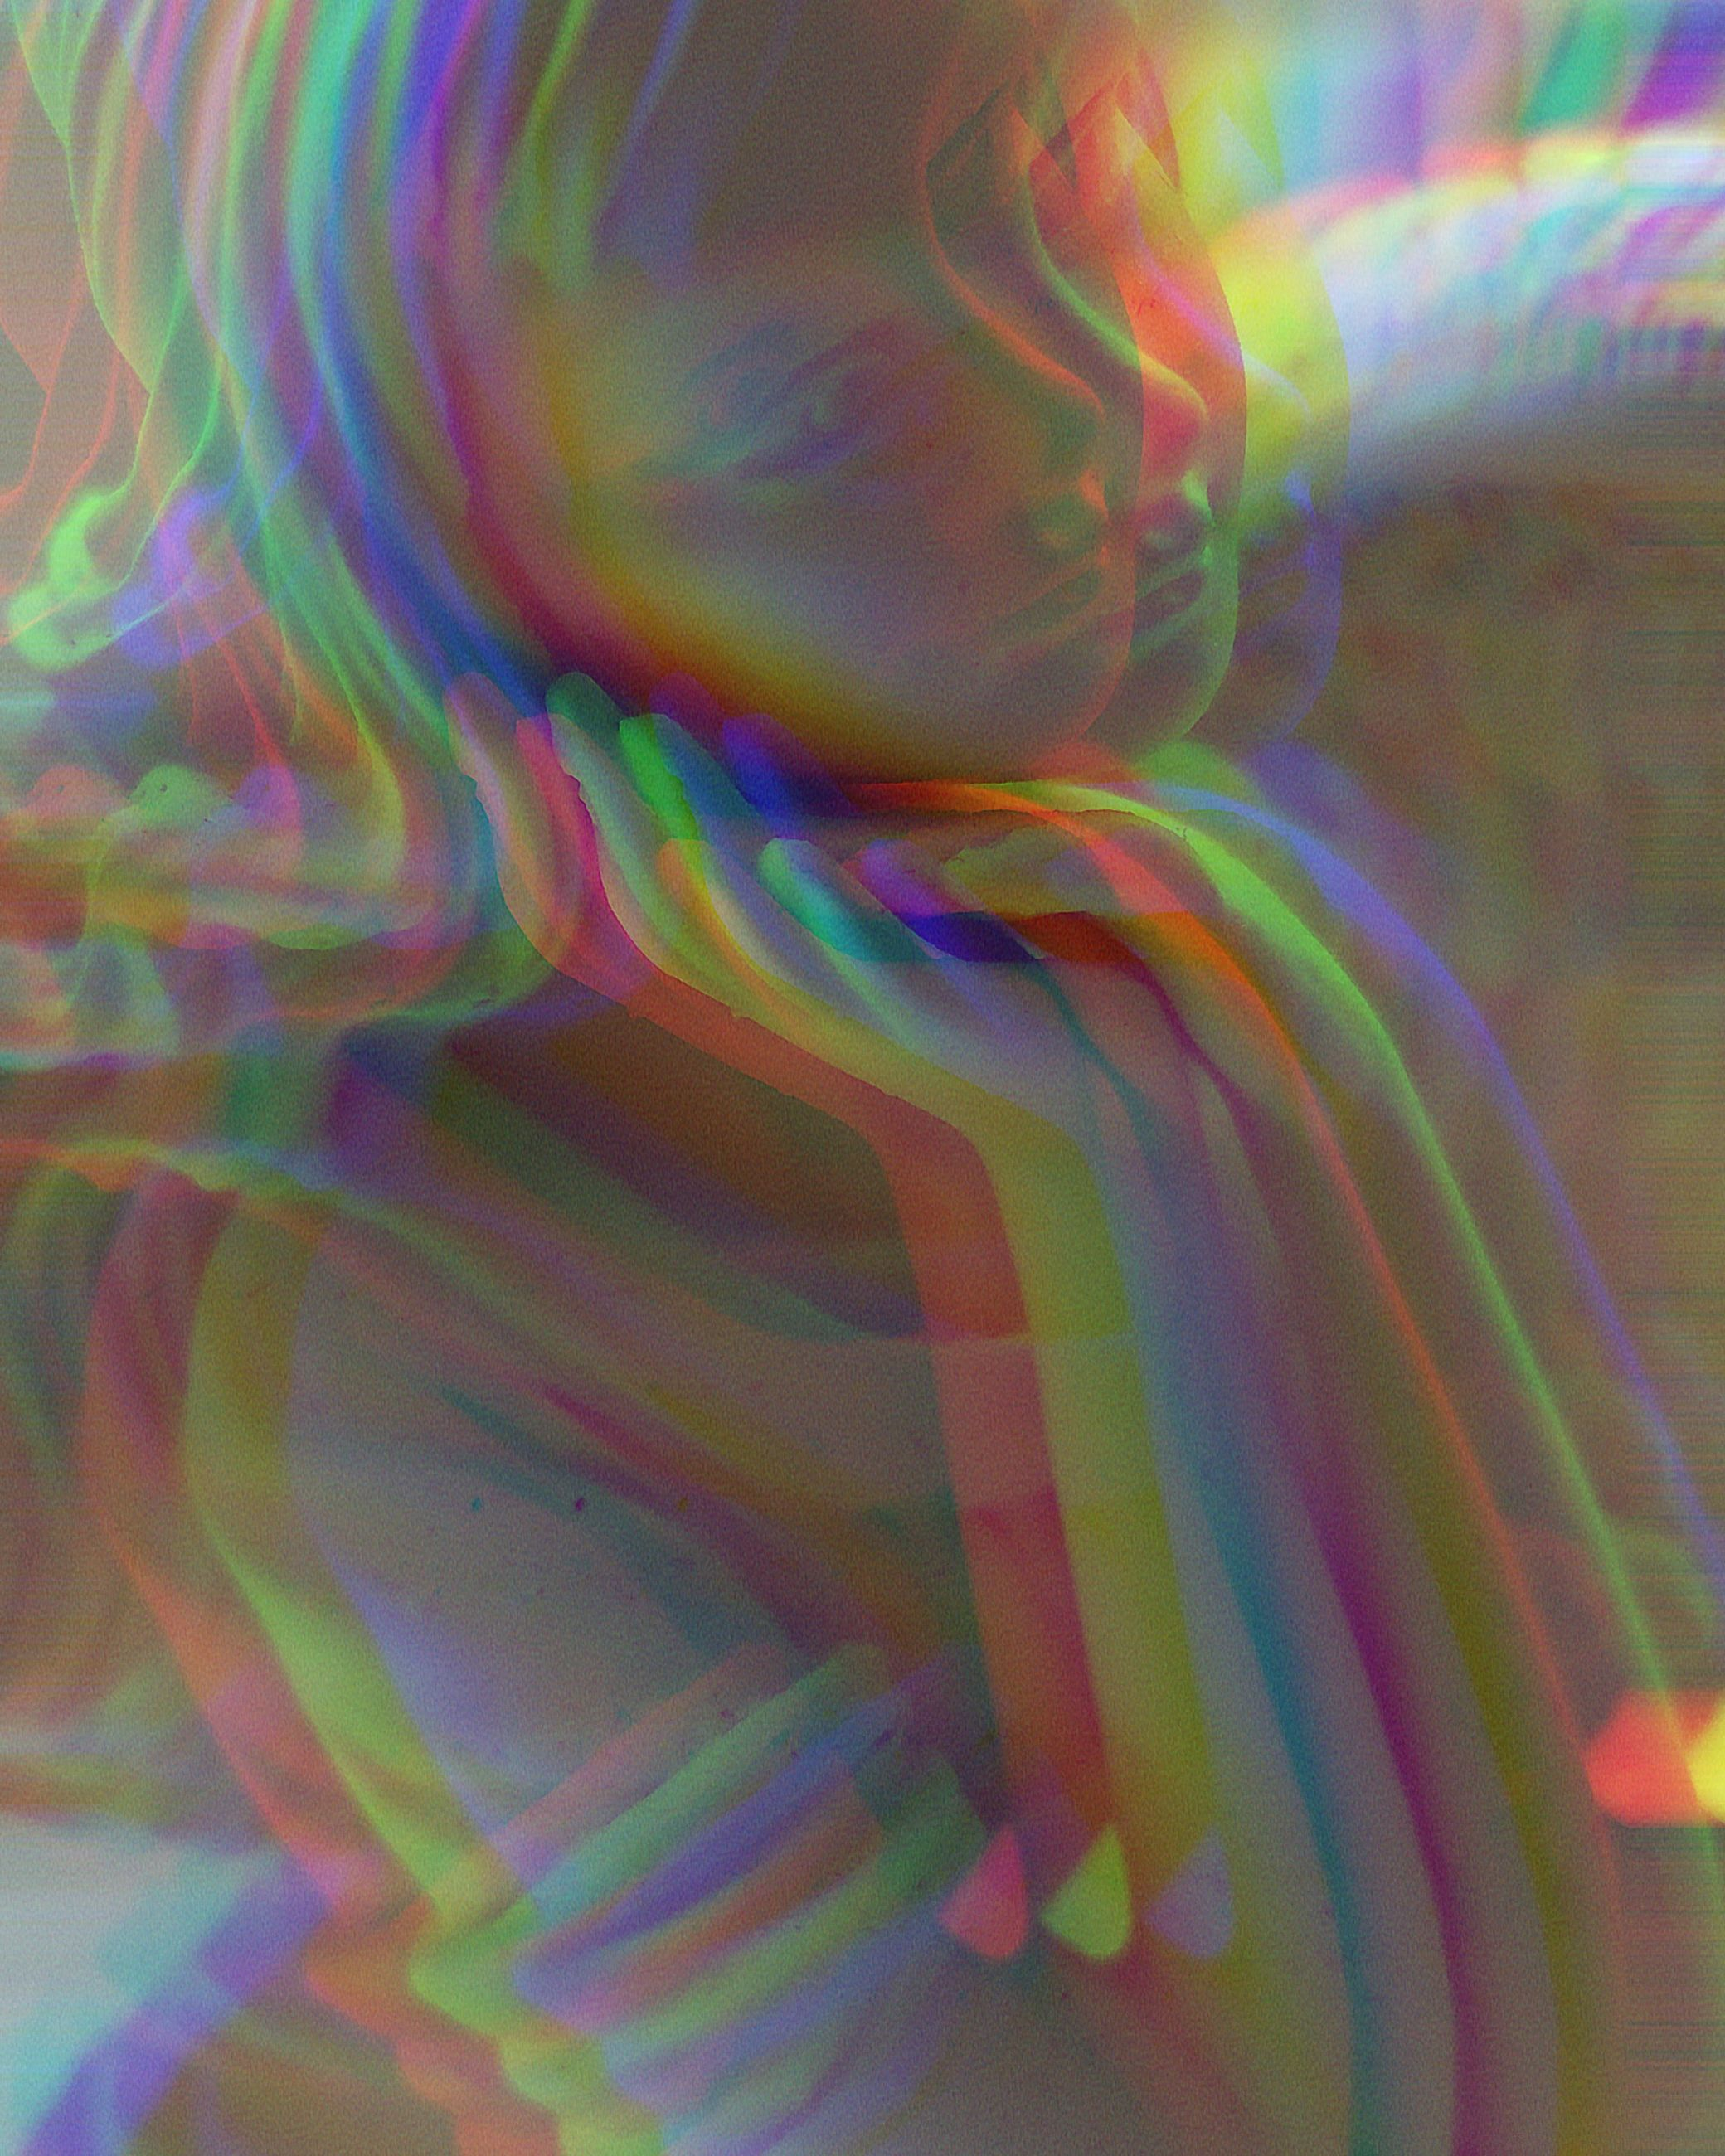 multi colored, abstract, motion, one person, pattern, indoors, women, close-up, long exposure, blurred motion, illuminated, real people, adult, light - natural phenomenon, nature, full frame, females, lifestyles, profile view, contemplation